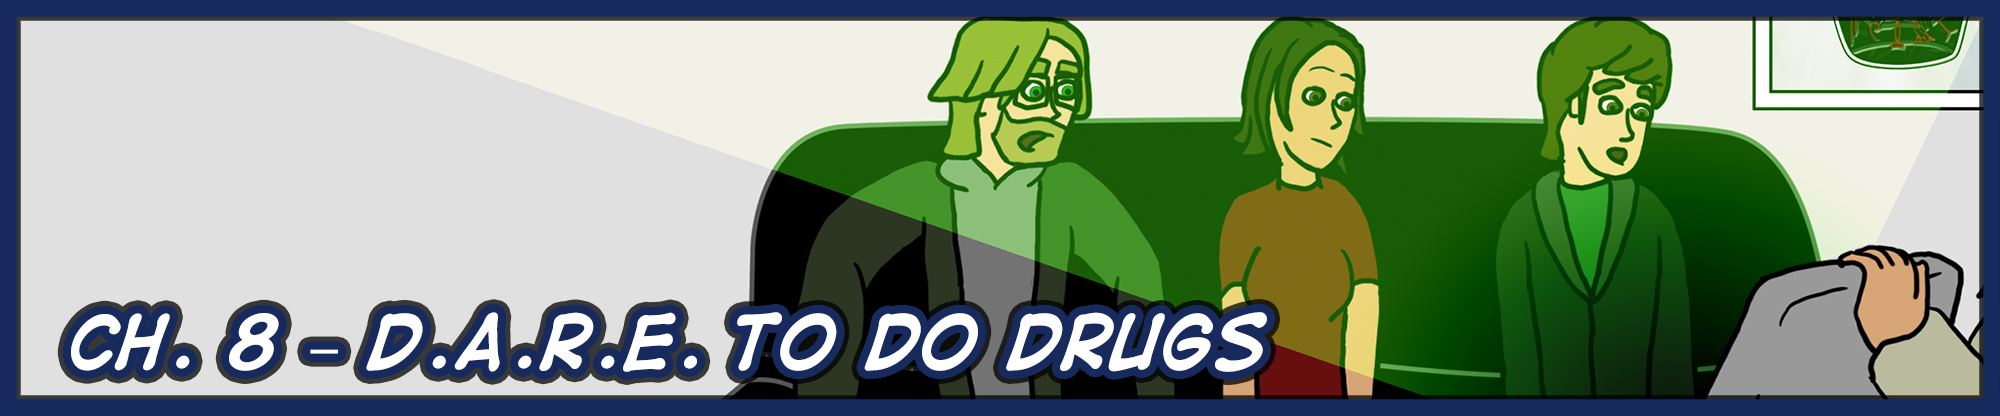 Ch. 8 – D.A.R.E. to do Drugs